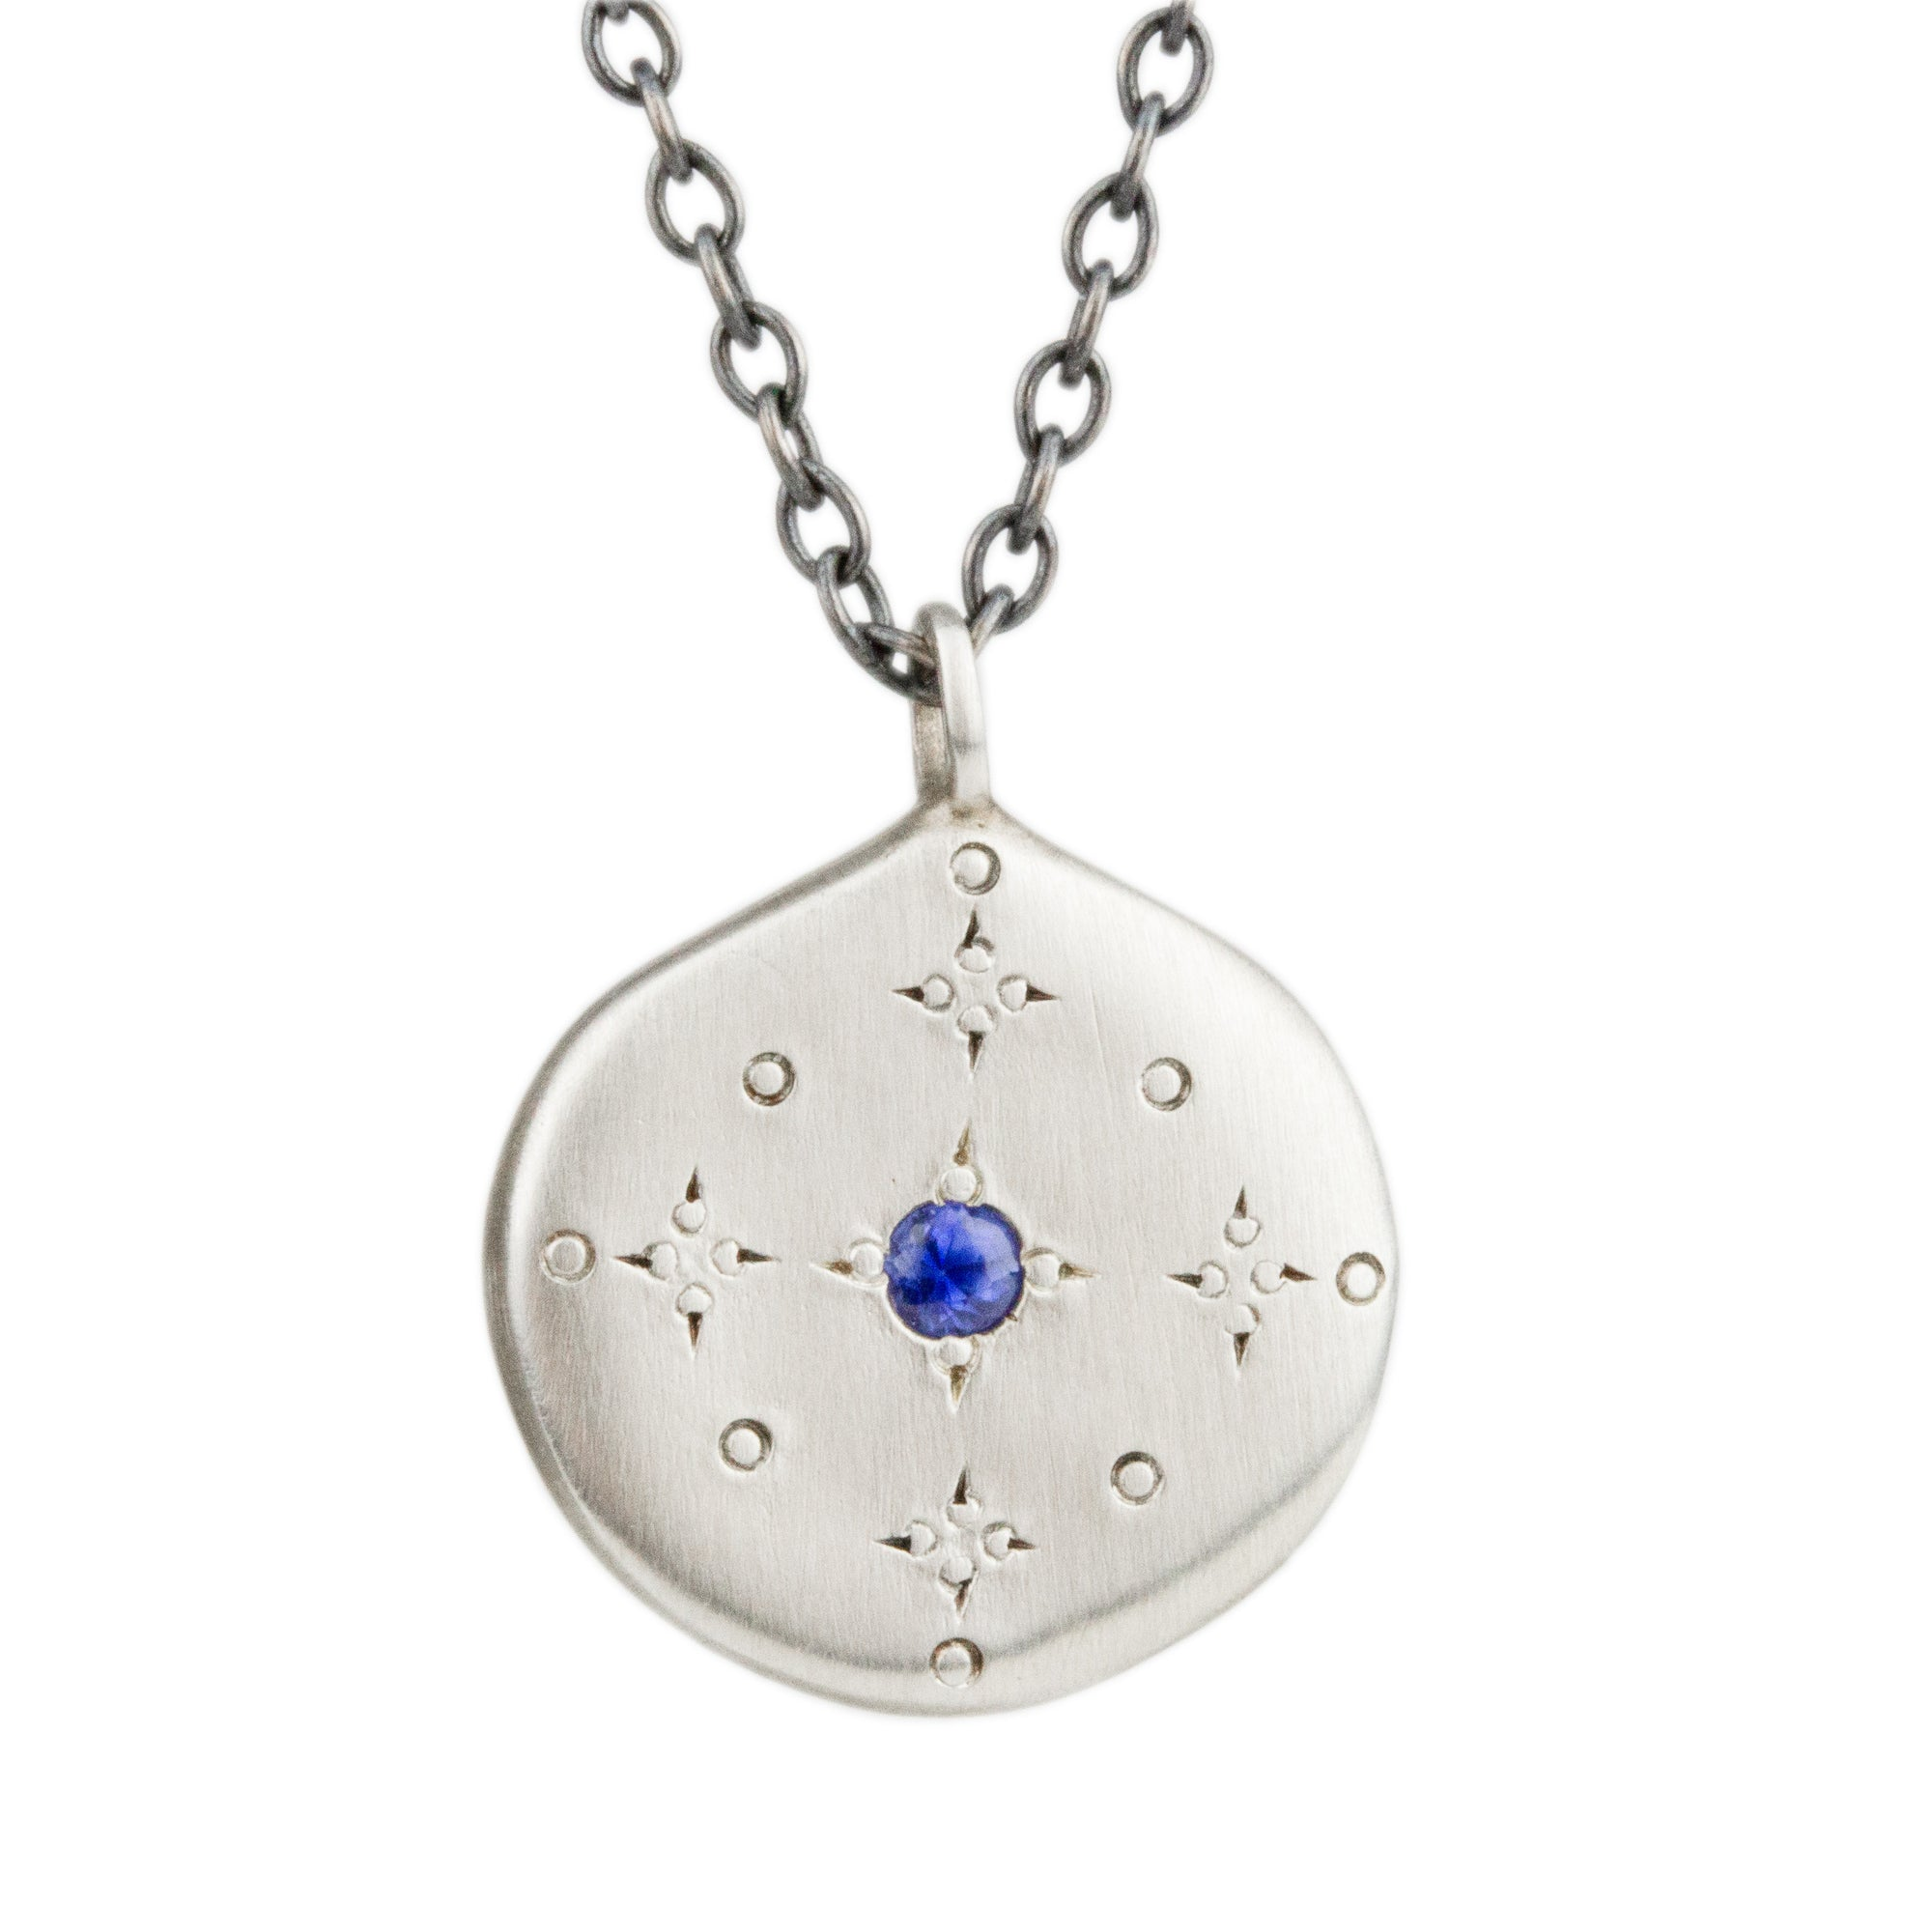 New Moon Blue Sapphire Necklace